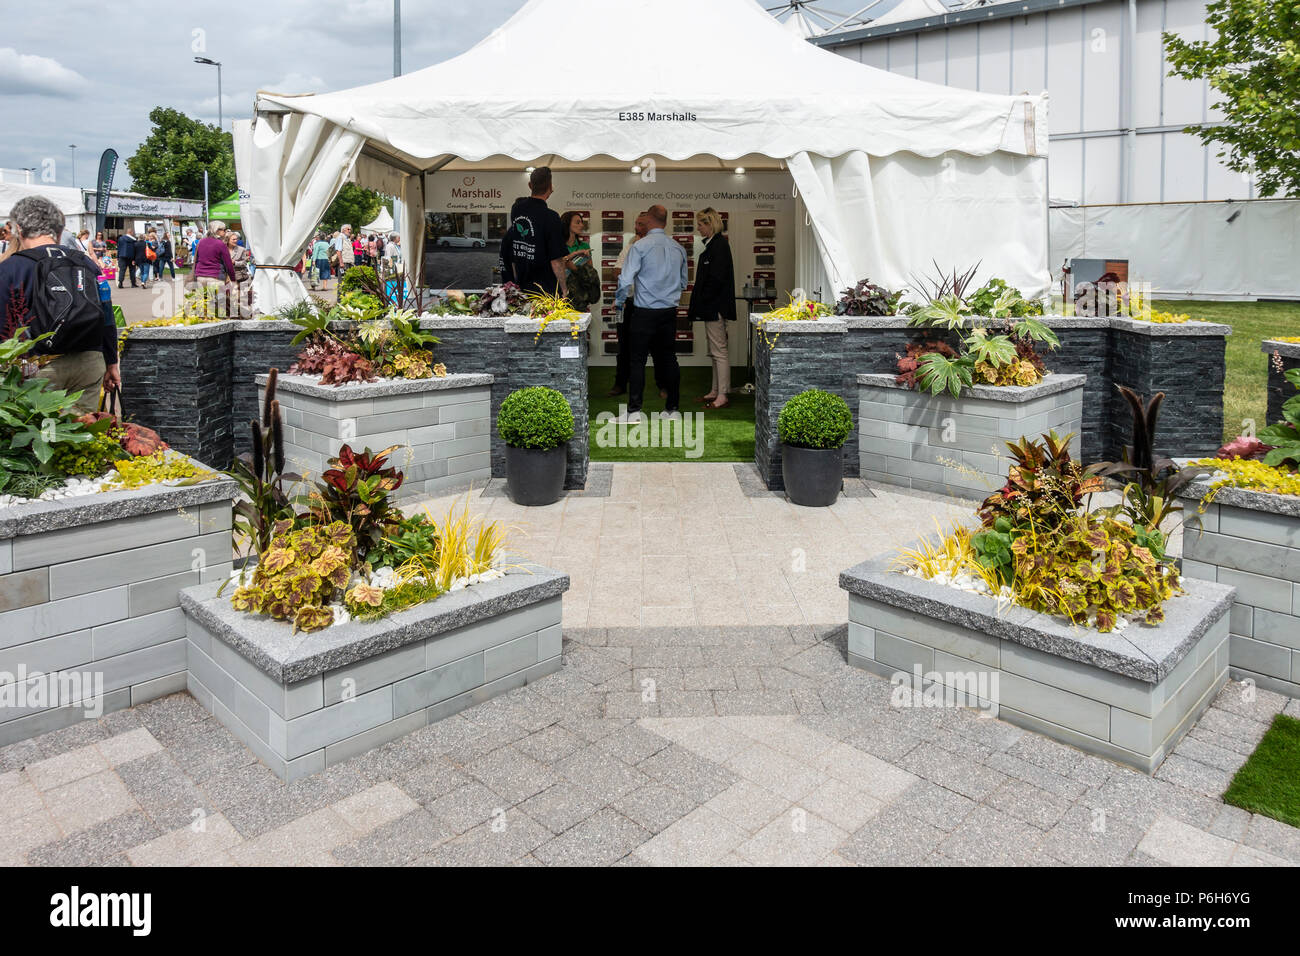 A modern, contemporary show garden featuring hard landscaping products - slabbing, walling, raised beds, by Marshalls: Gardeners' World Live, NEC, - Stock Image